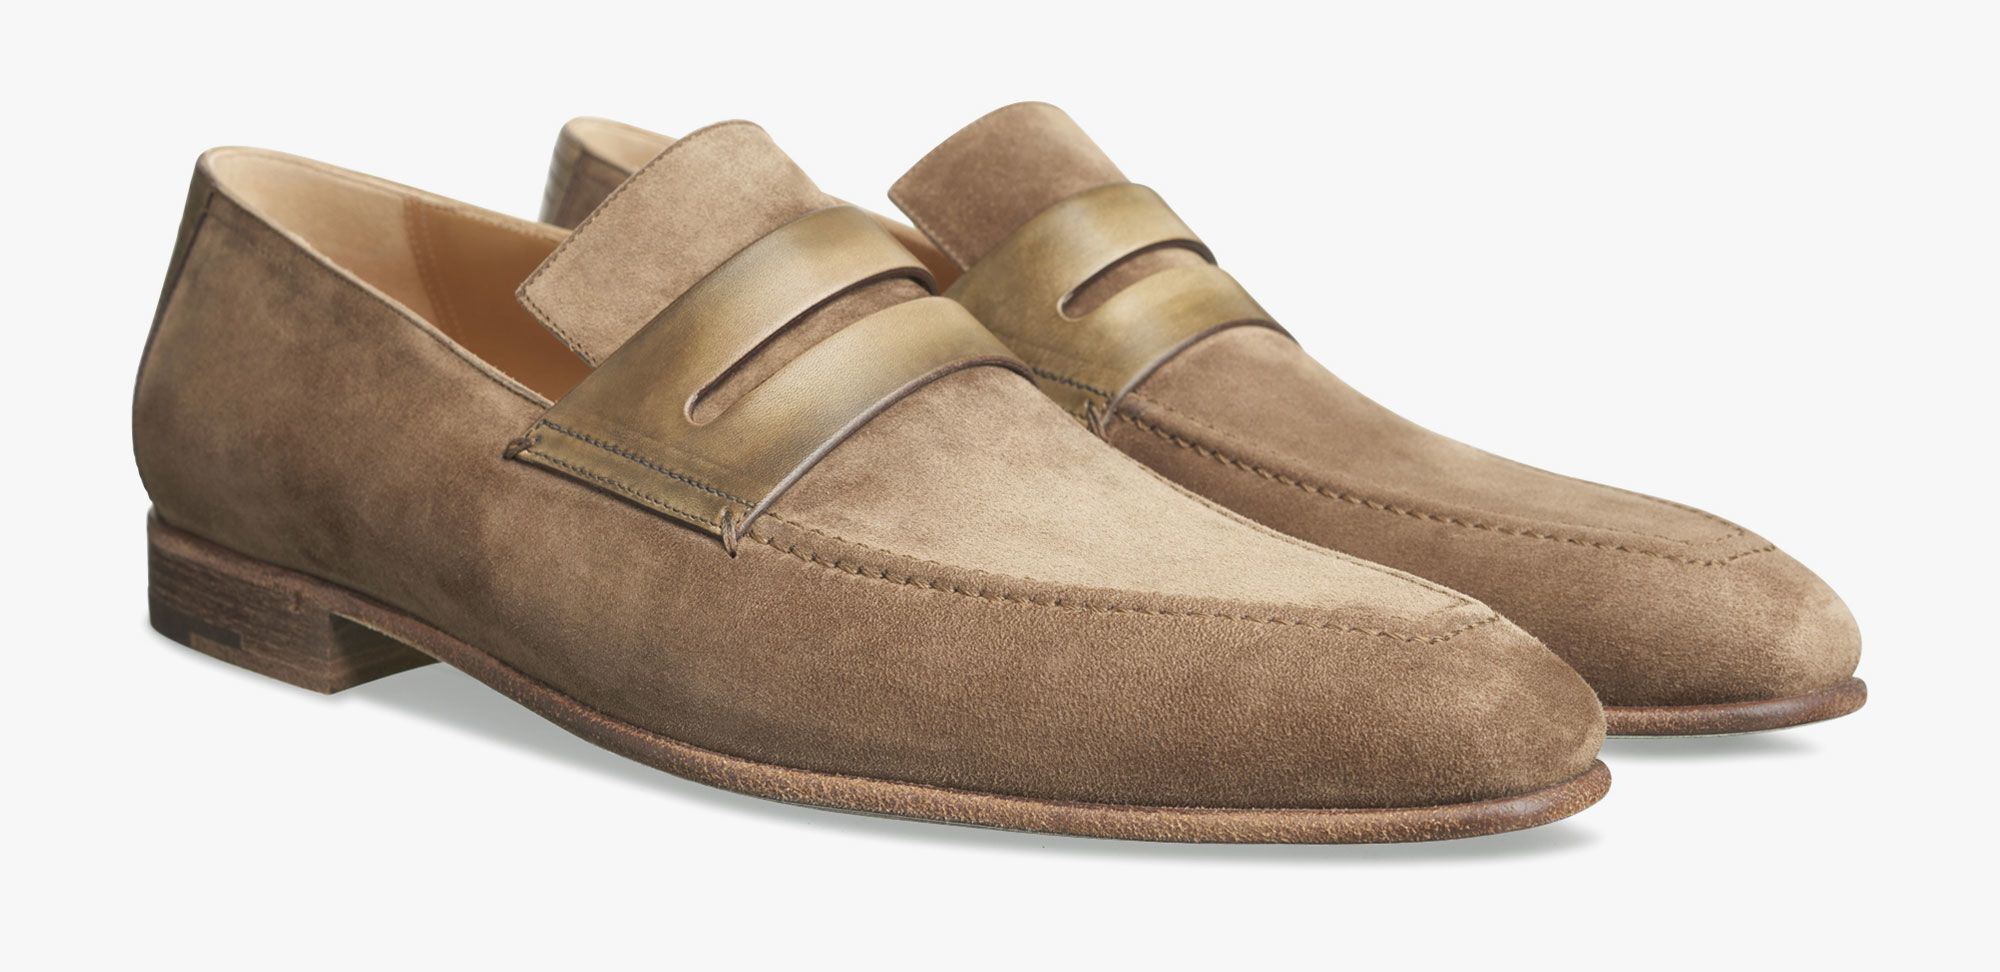 Corthay arca derby dress shoes Taupe suede